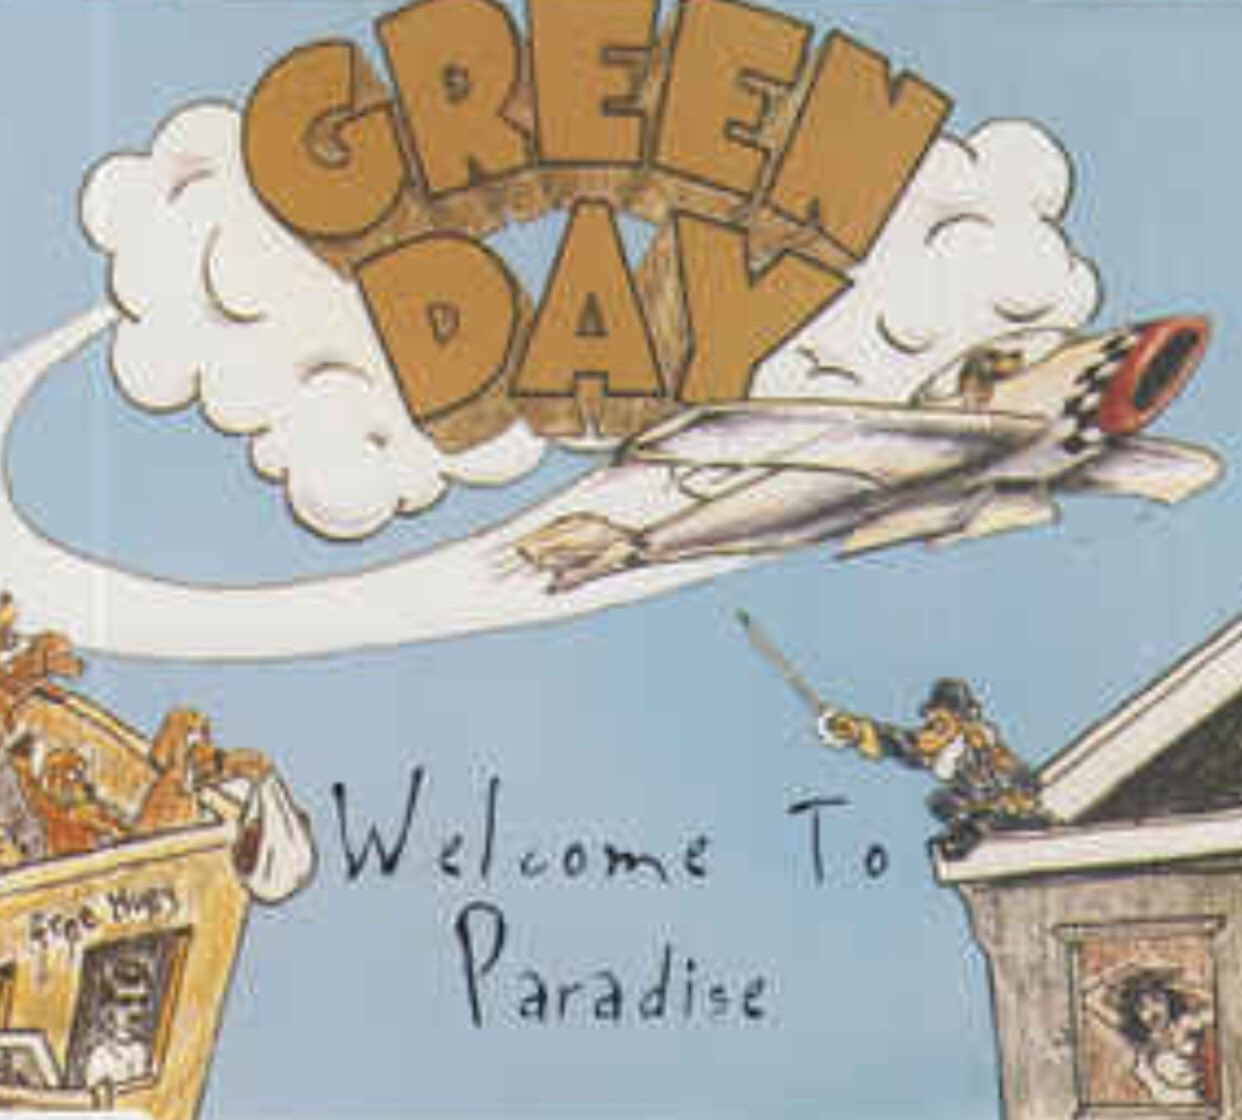 Happy Birthday to my old friend Green Day s Mike Dirnt! Here is the cover of the single for Welcome To Paradise